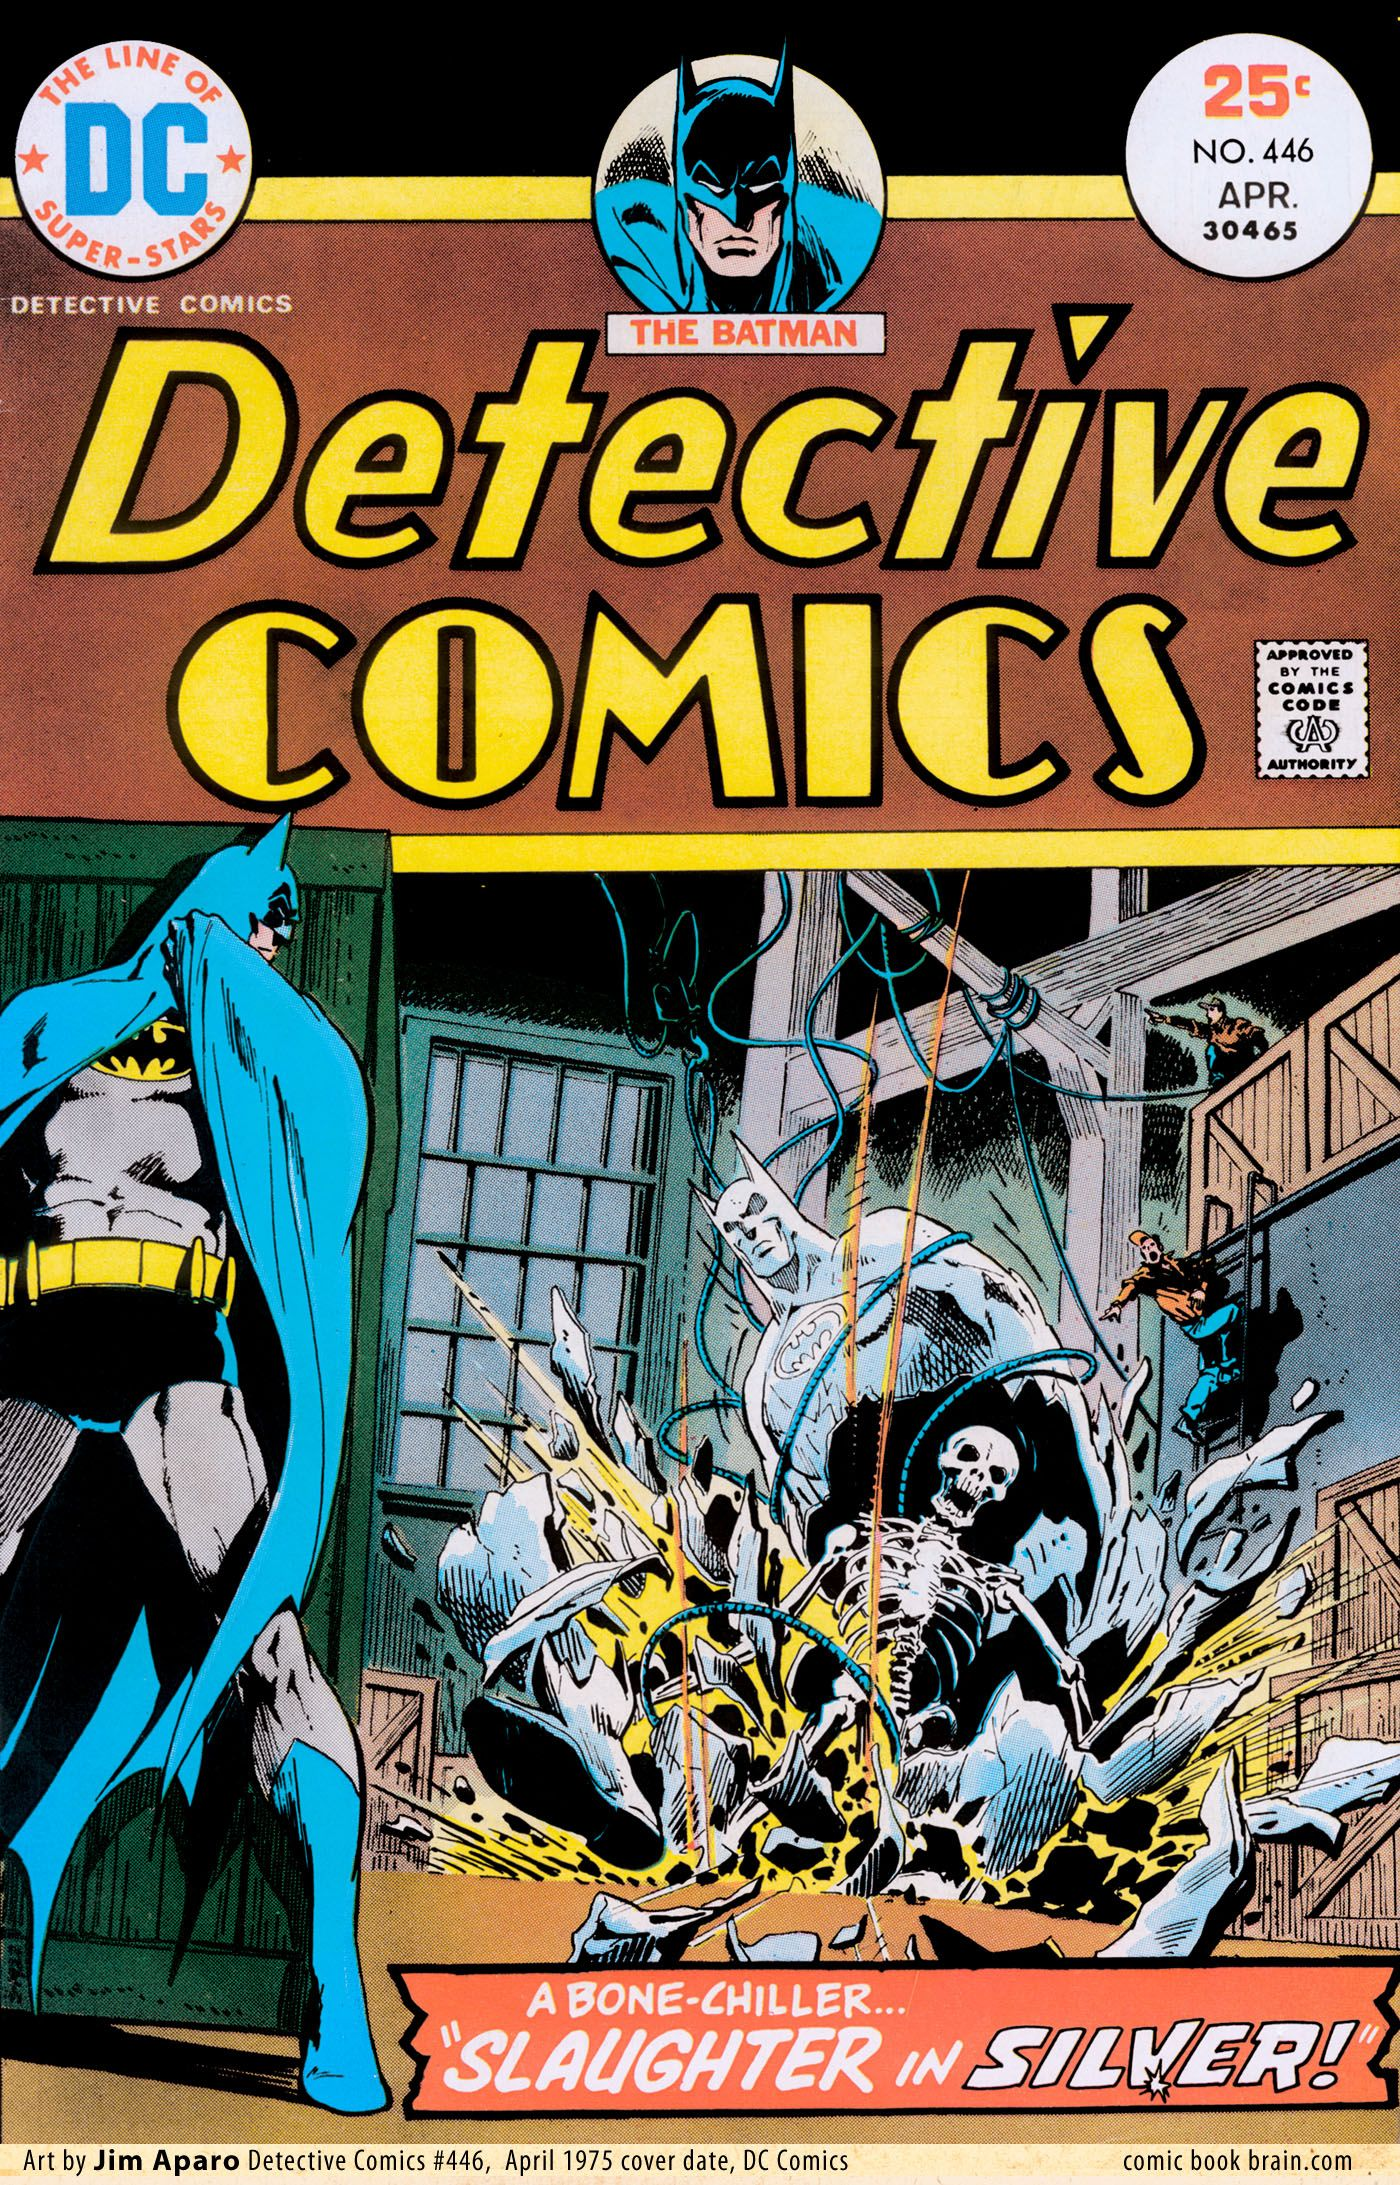 Roberts Auto Group >> Detective Comics 446 - Aparo (With images) | Batman comic cover, Comics, Batman comic books